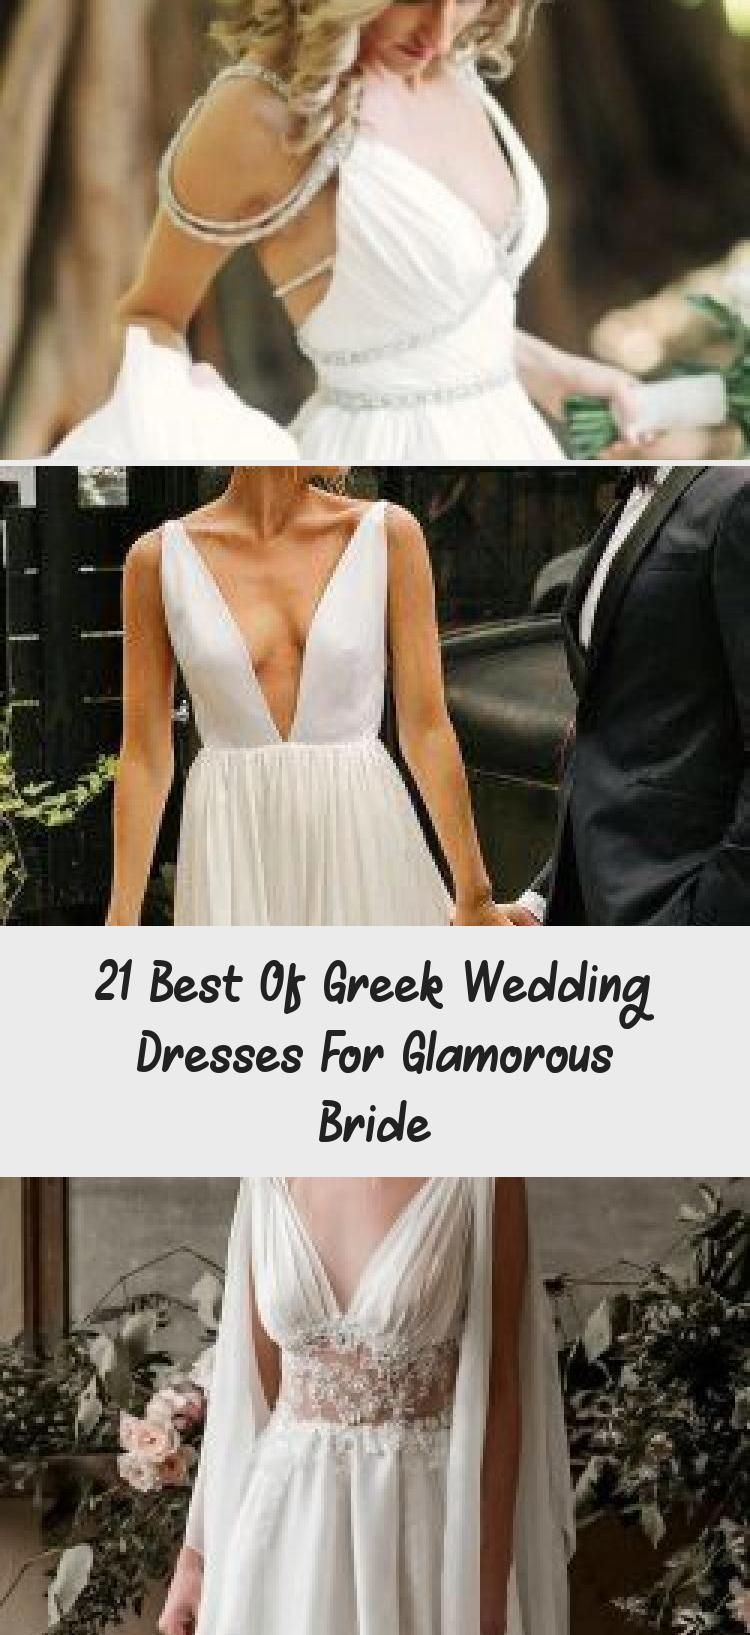 21 Best Of Greek Wedding Dresses For Glamorous Bride #greekweddingdresses 21 Best Of Greek Wedding Dresses For Glamorous Bride | Wedding Forward #Italianweddingdressesguest #weddingdressesguestCurvy #weddingdressesguestFall #weddingdressesguestAmazon #weddingdressesguestKids #greekweddingdresses